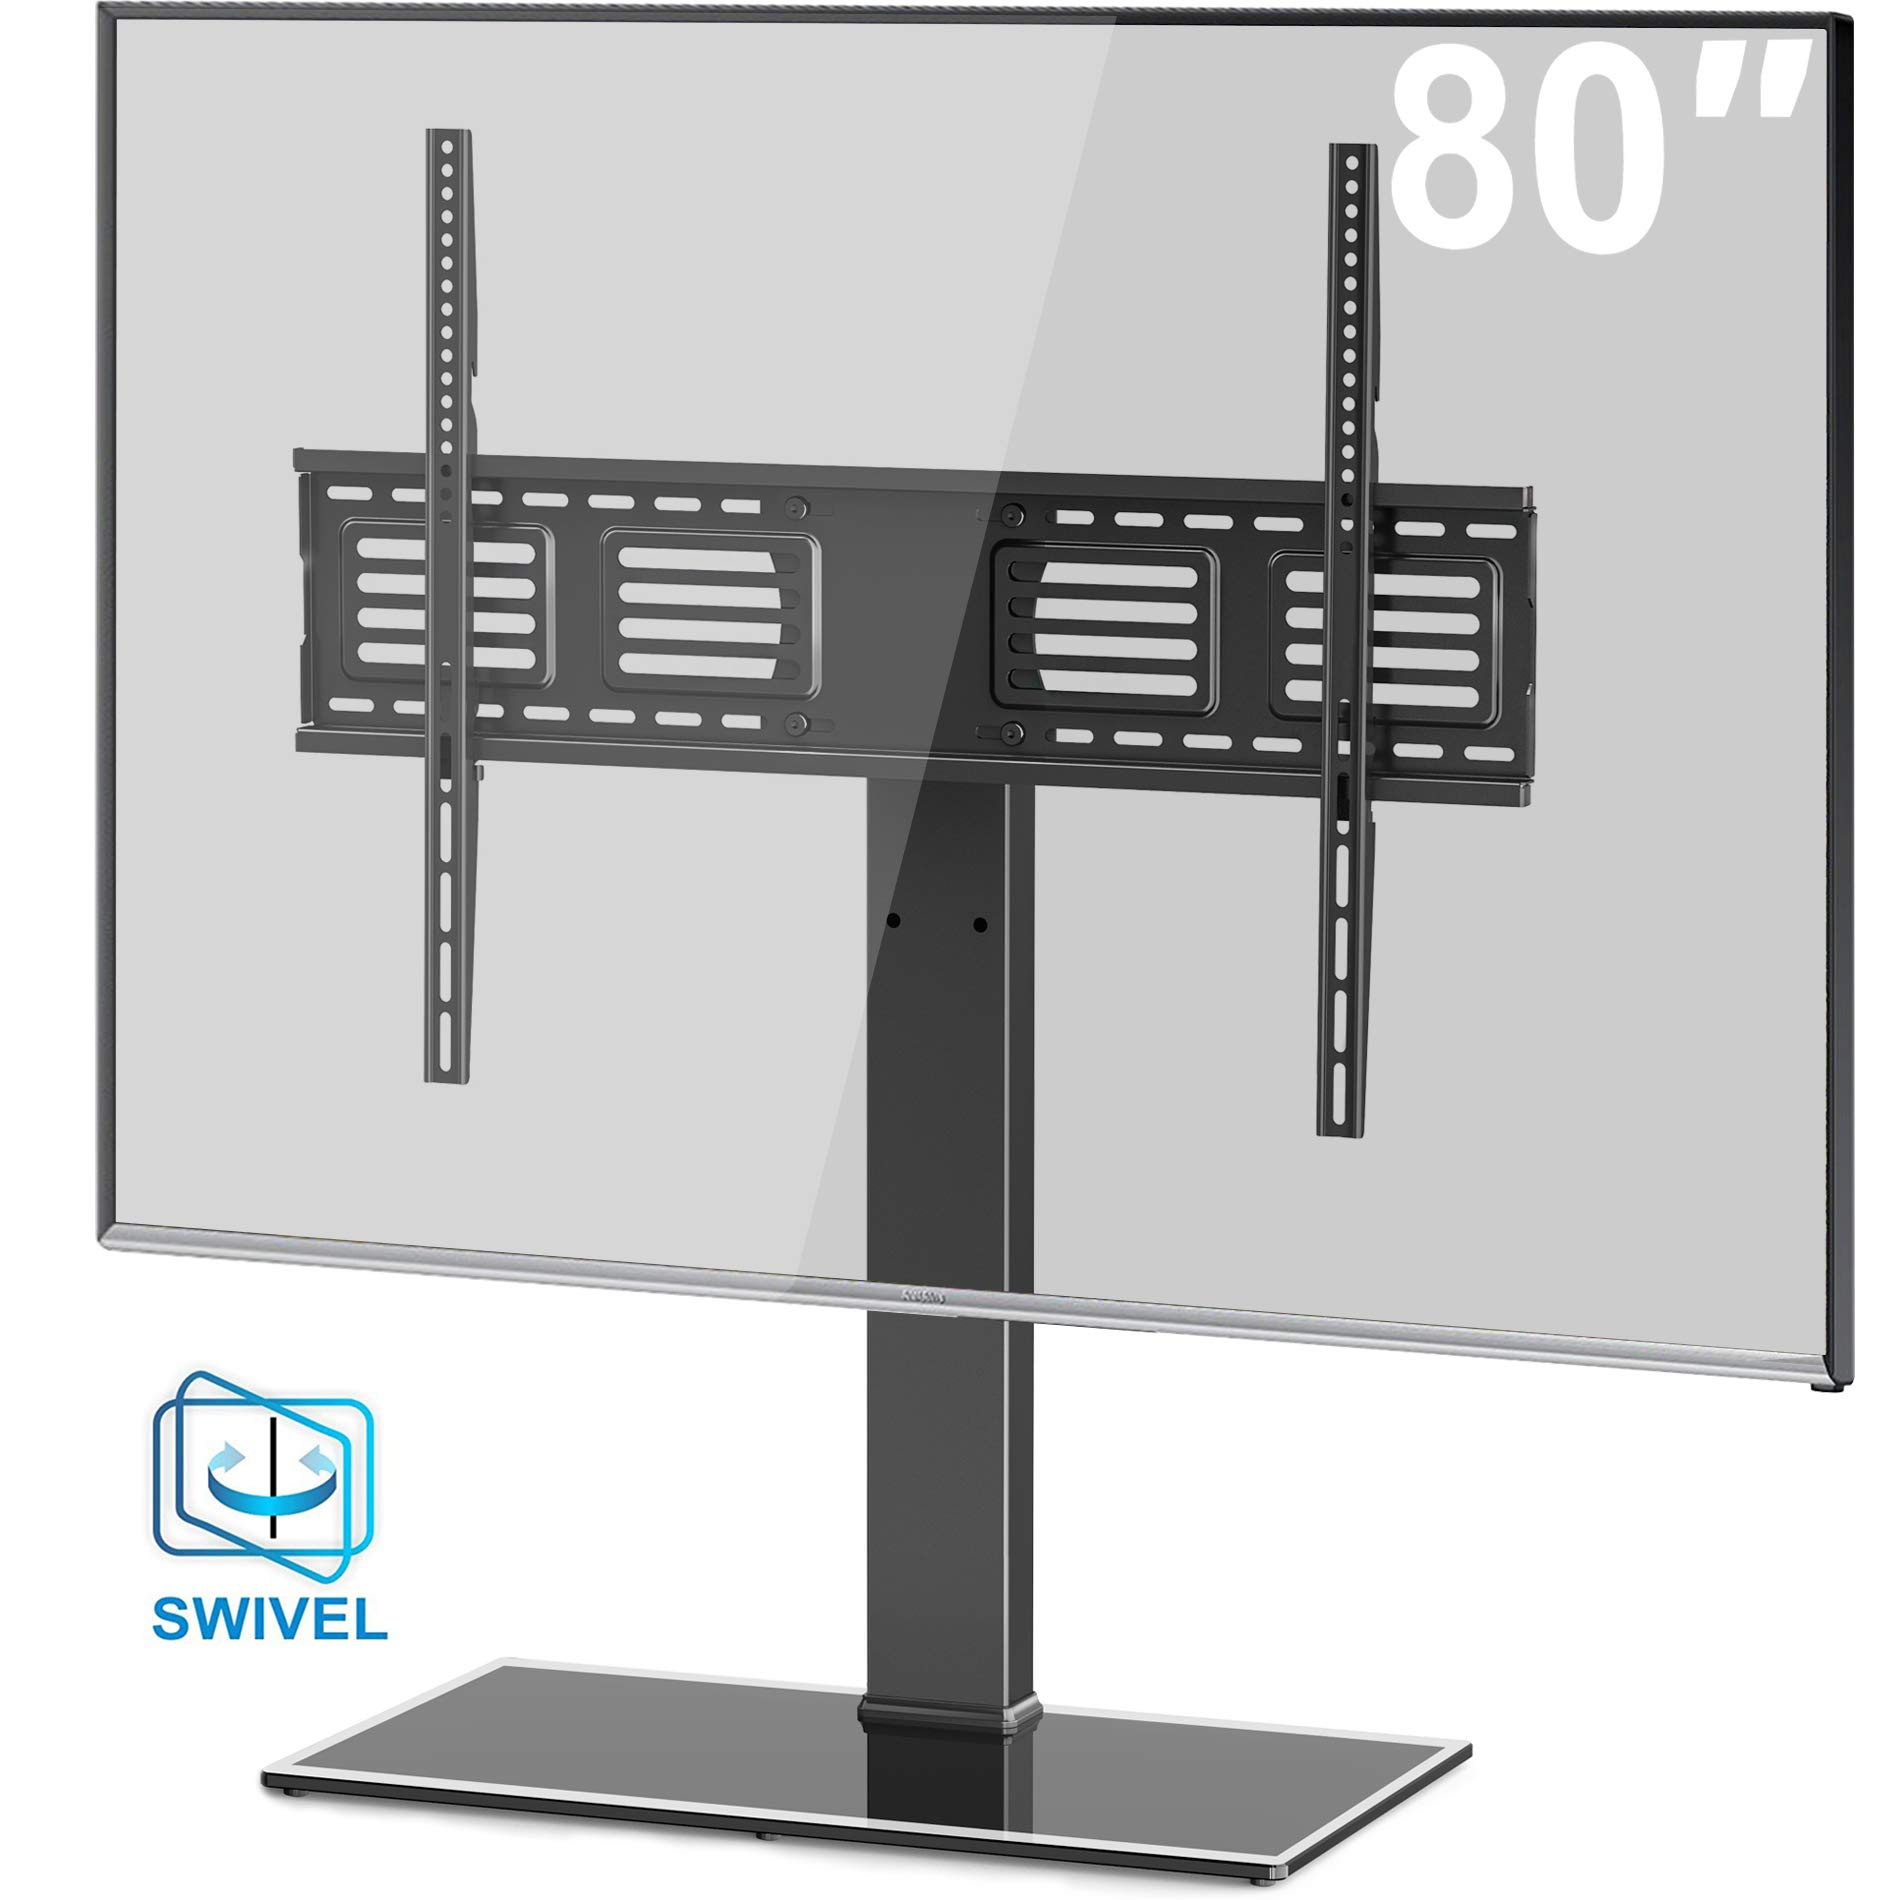 FITUEYES Universal TV Stand with Swivel Mount Height Adjustable for 50inch to 80 inch TV FTT107003GB by FITUEYES